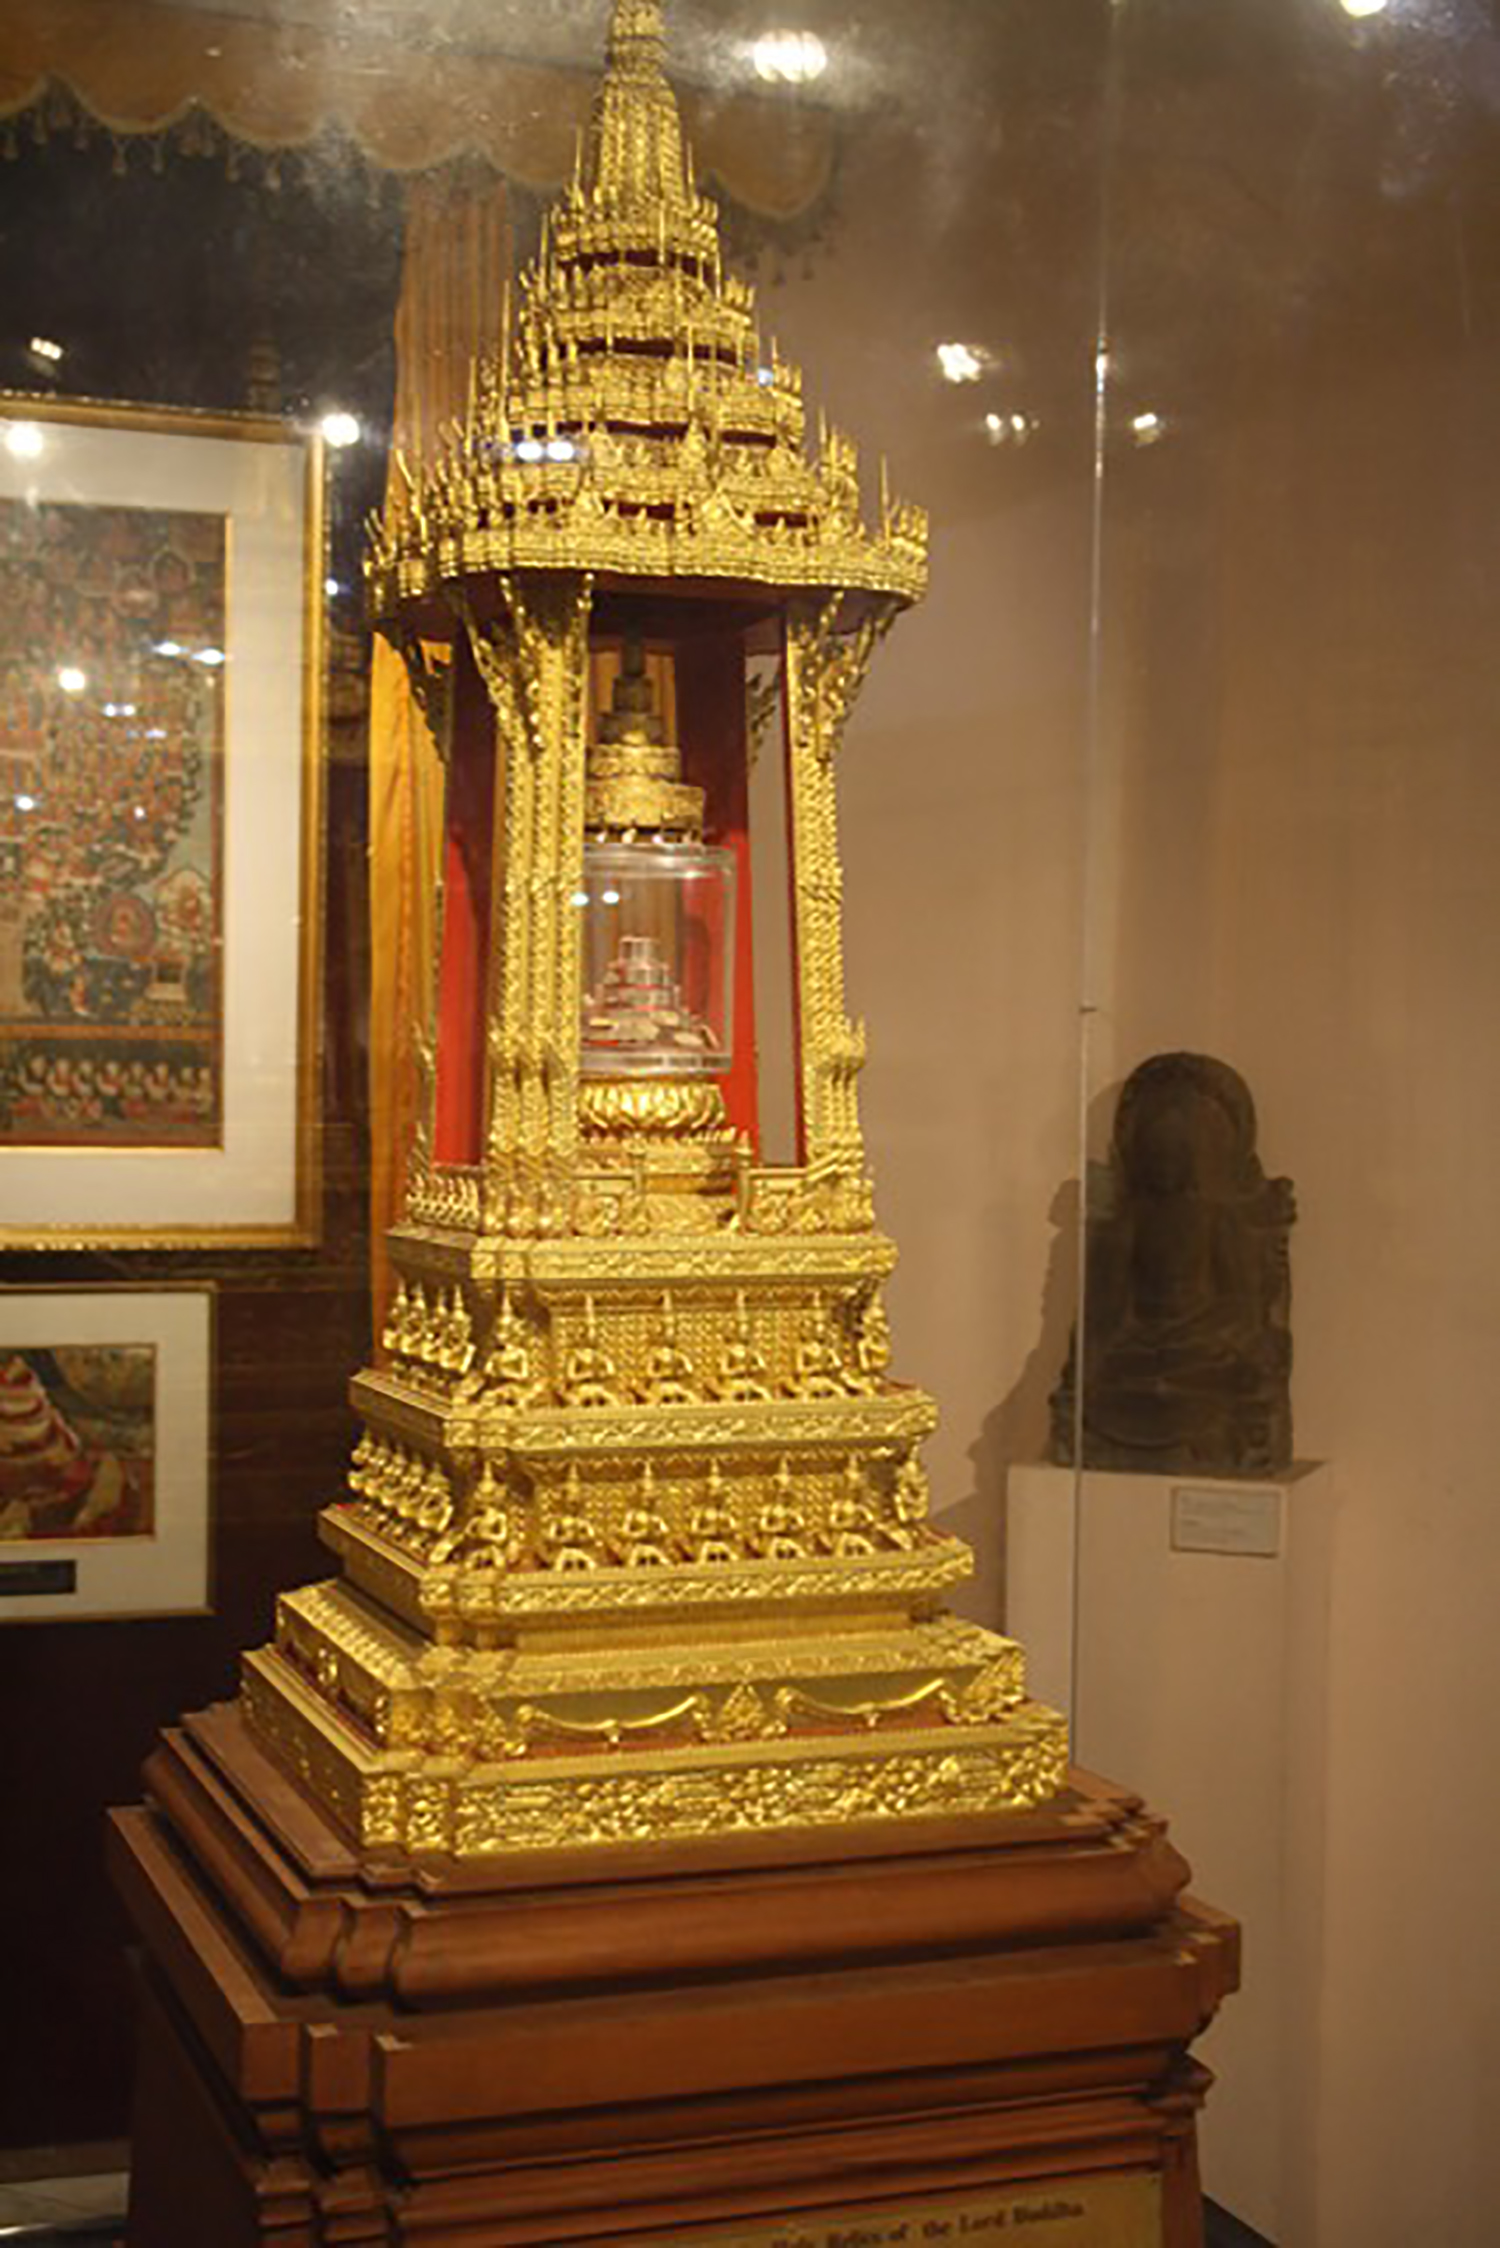 "A shrine containing relics of the Lord Buddha presented by the government of Thailand to the National Museum in Delhi, India. According to the museum's website, ""These objects are of great reverence to Buddhist pilgrims, and the Museum gets hundreds of visitors of Buddhist faith from all over the world who come to this room to pay homage and venerate the relics."" Photo: Crispin Paine."